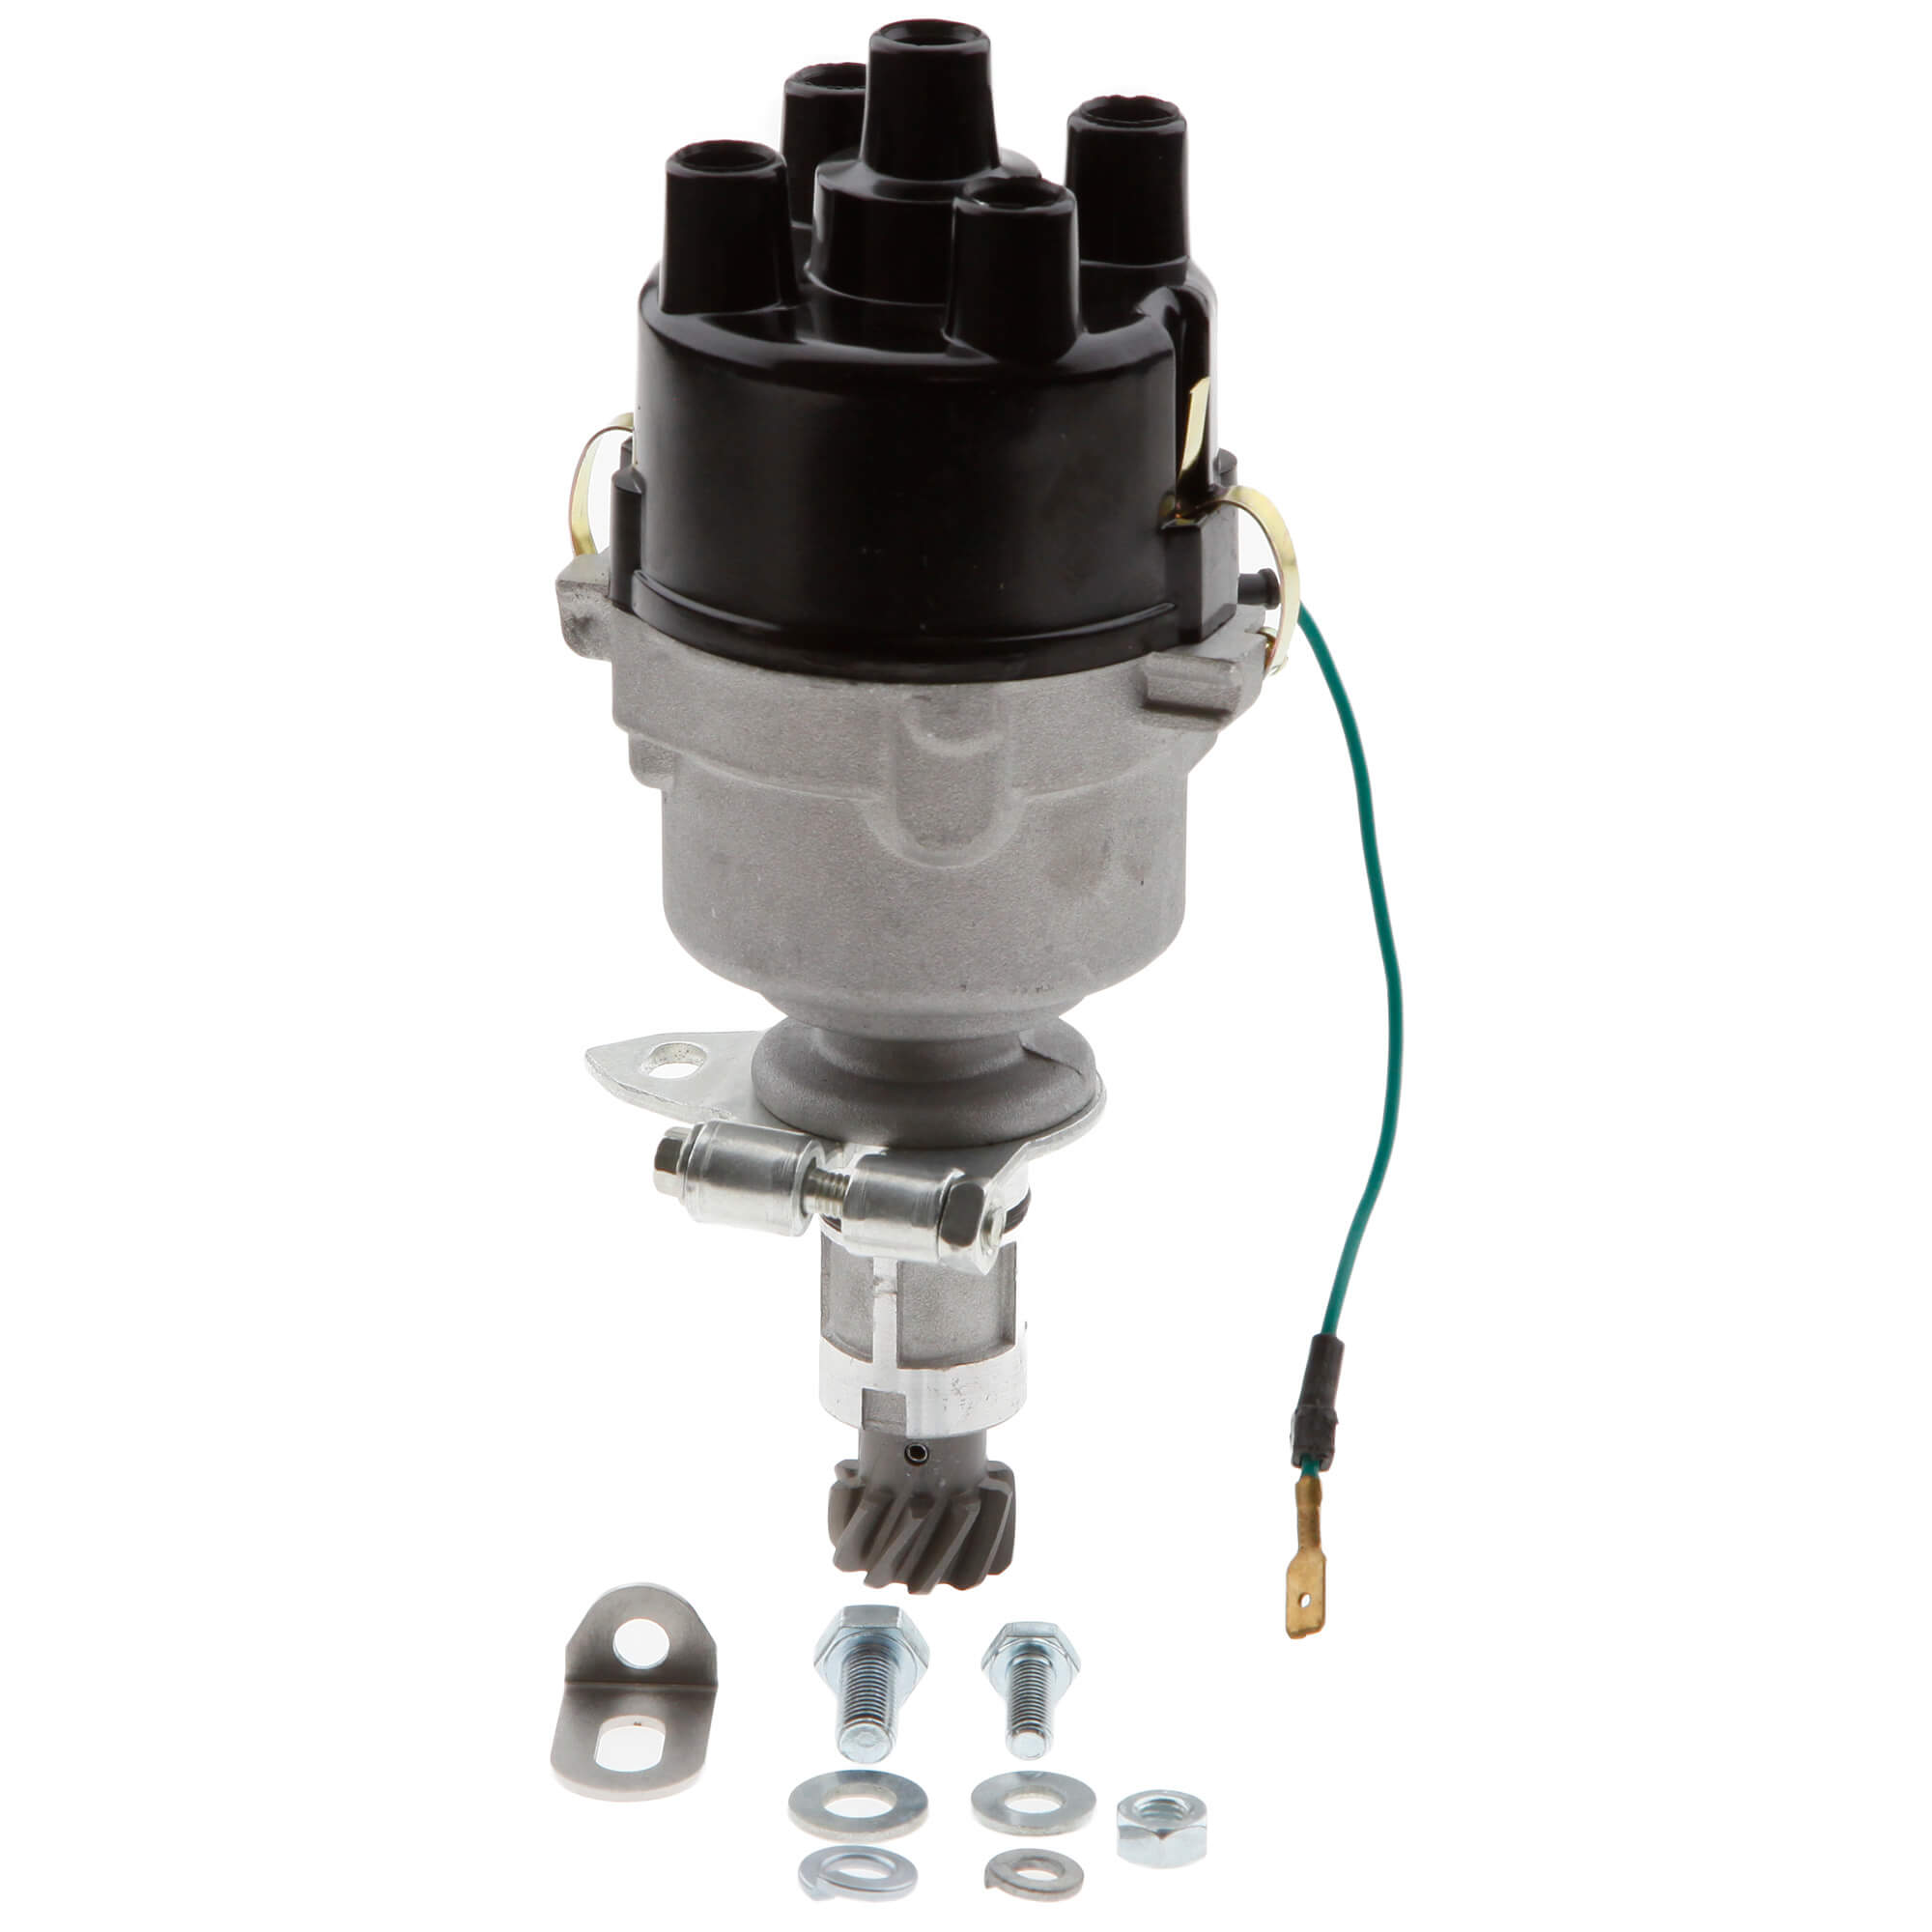 143 175 Replacement Distributor Cap 4 Cylinder Mallory Dual Point Parts W Drive Gear And Hold Down